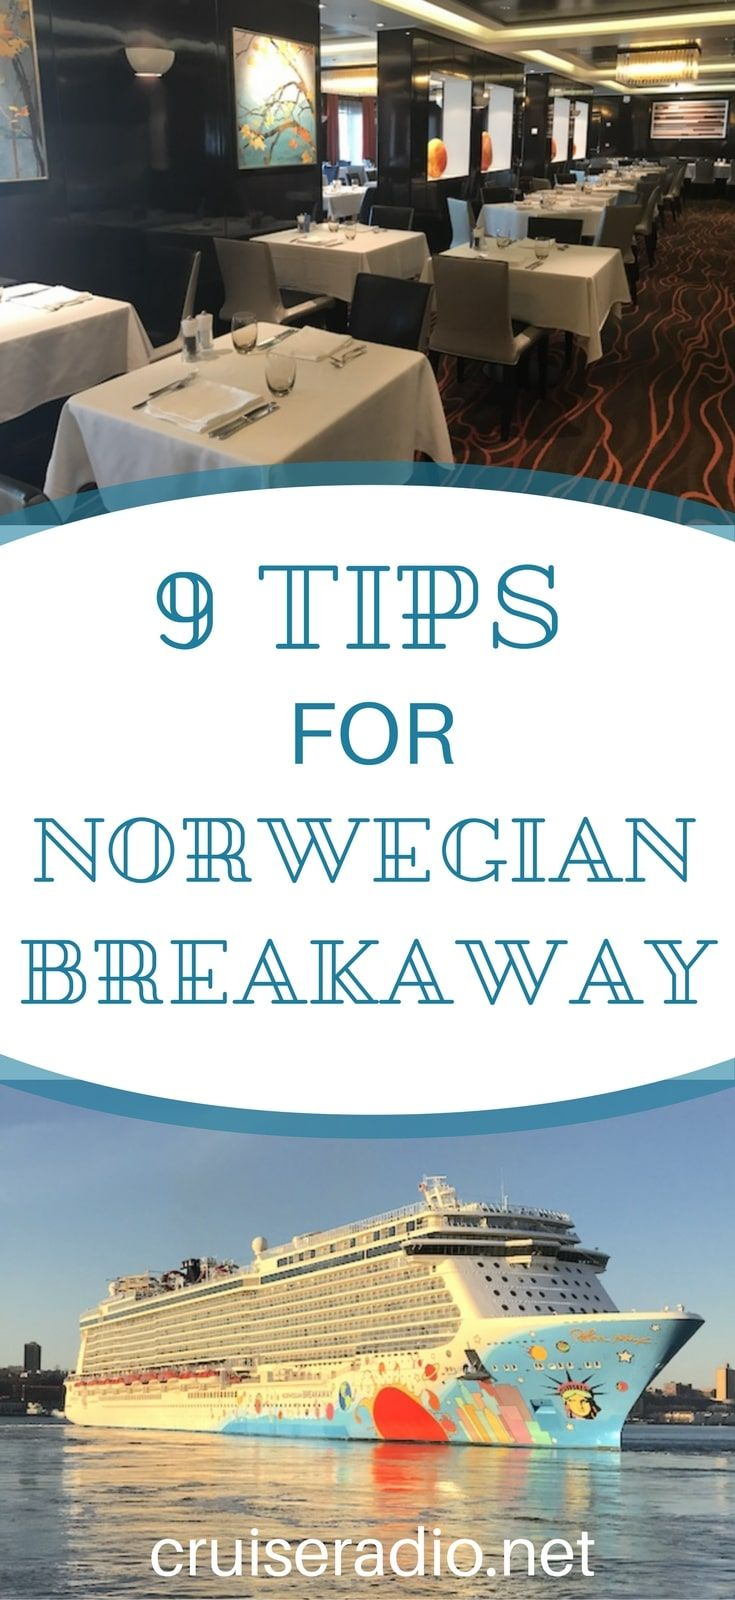 Inspired by a question from a fellow cruiser, we decided to make a post offering tips and advice for Norwegian Cruise Line's ship Norwegian Breakaway.